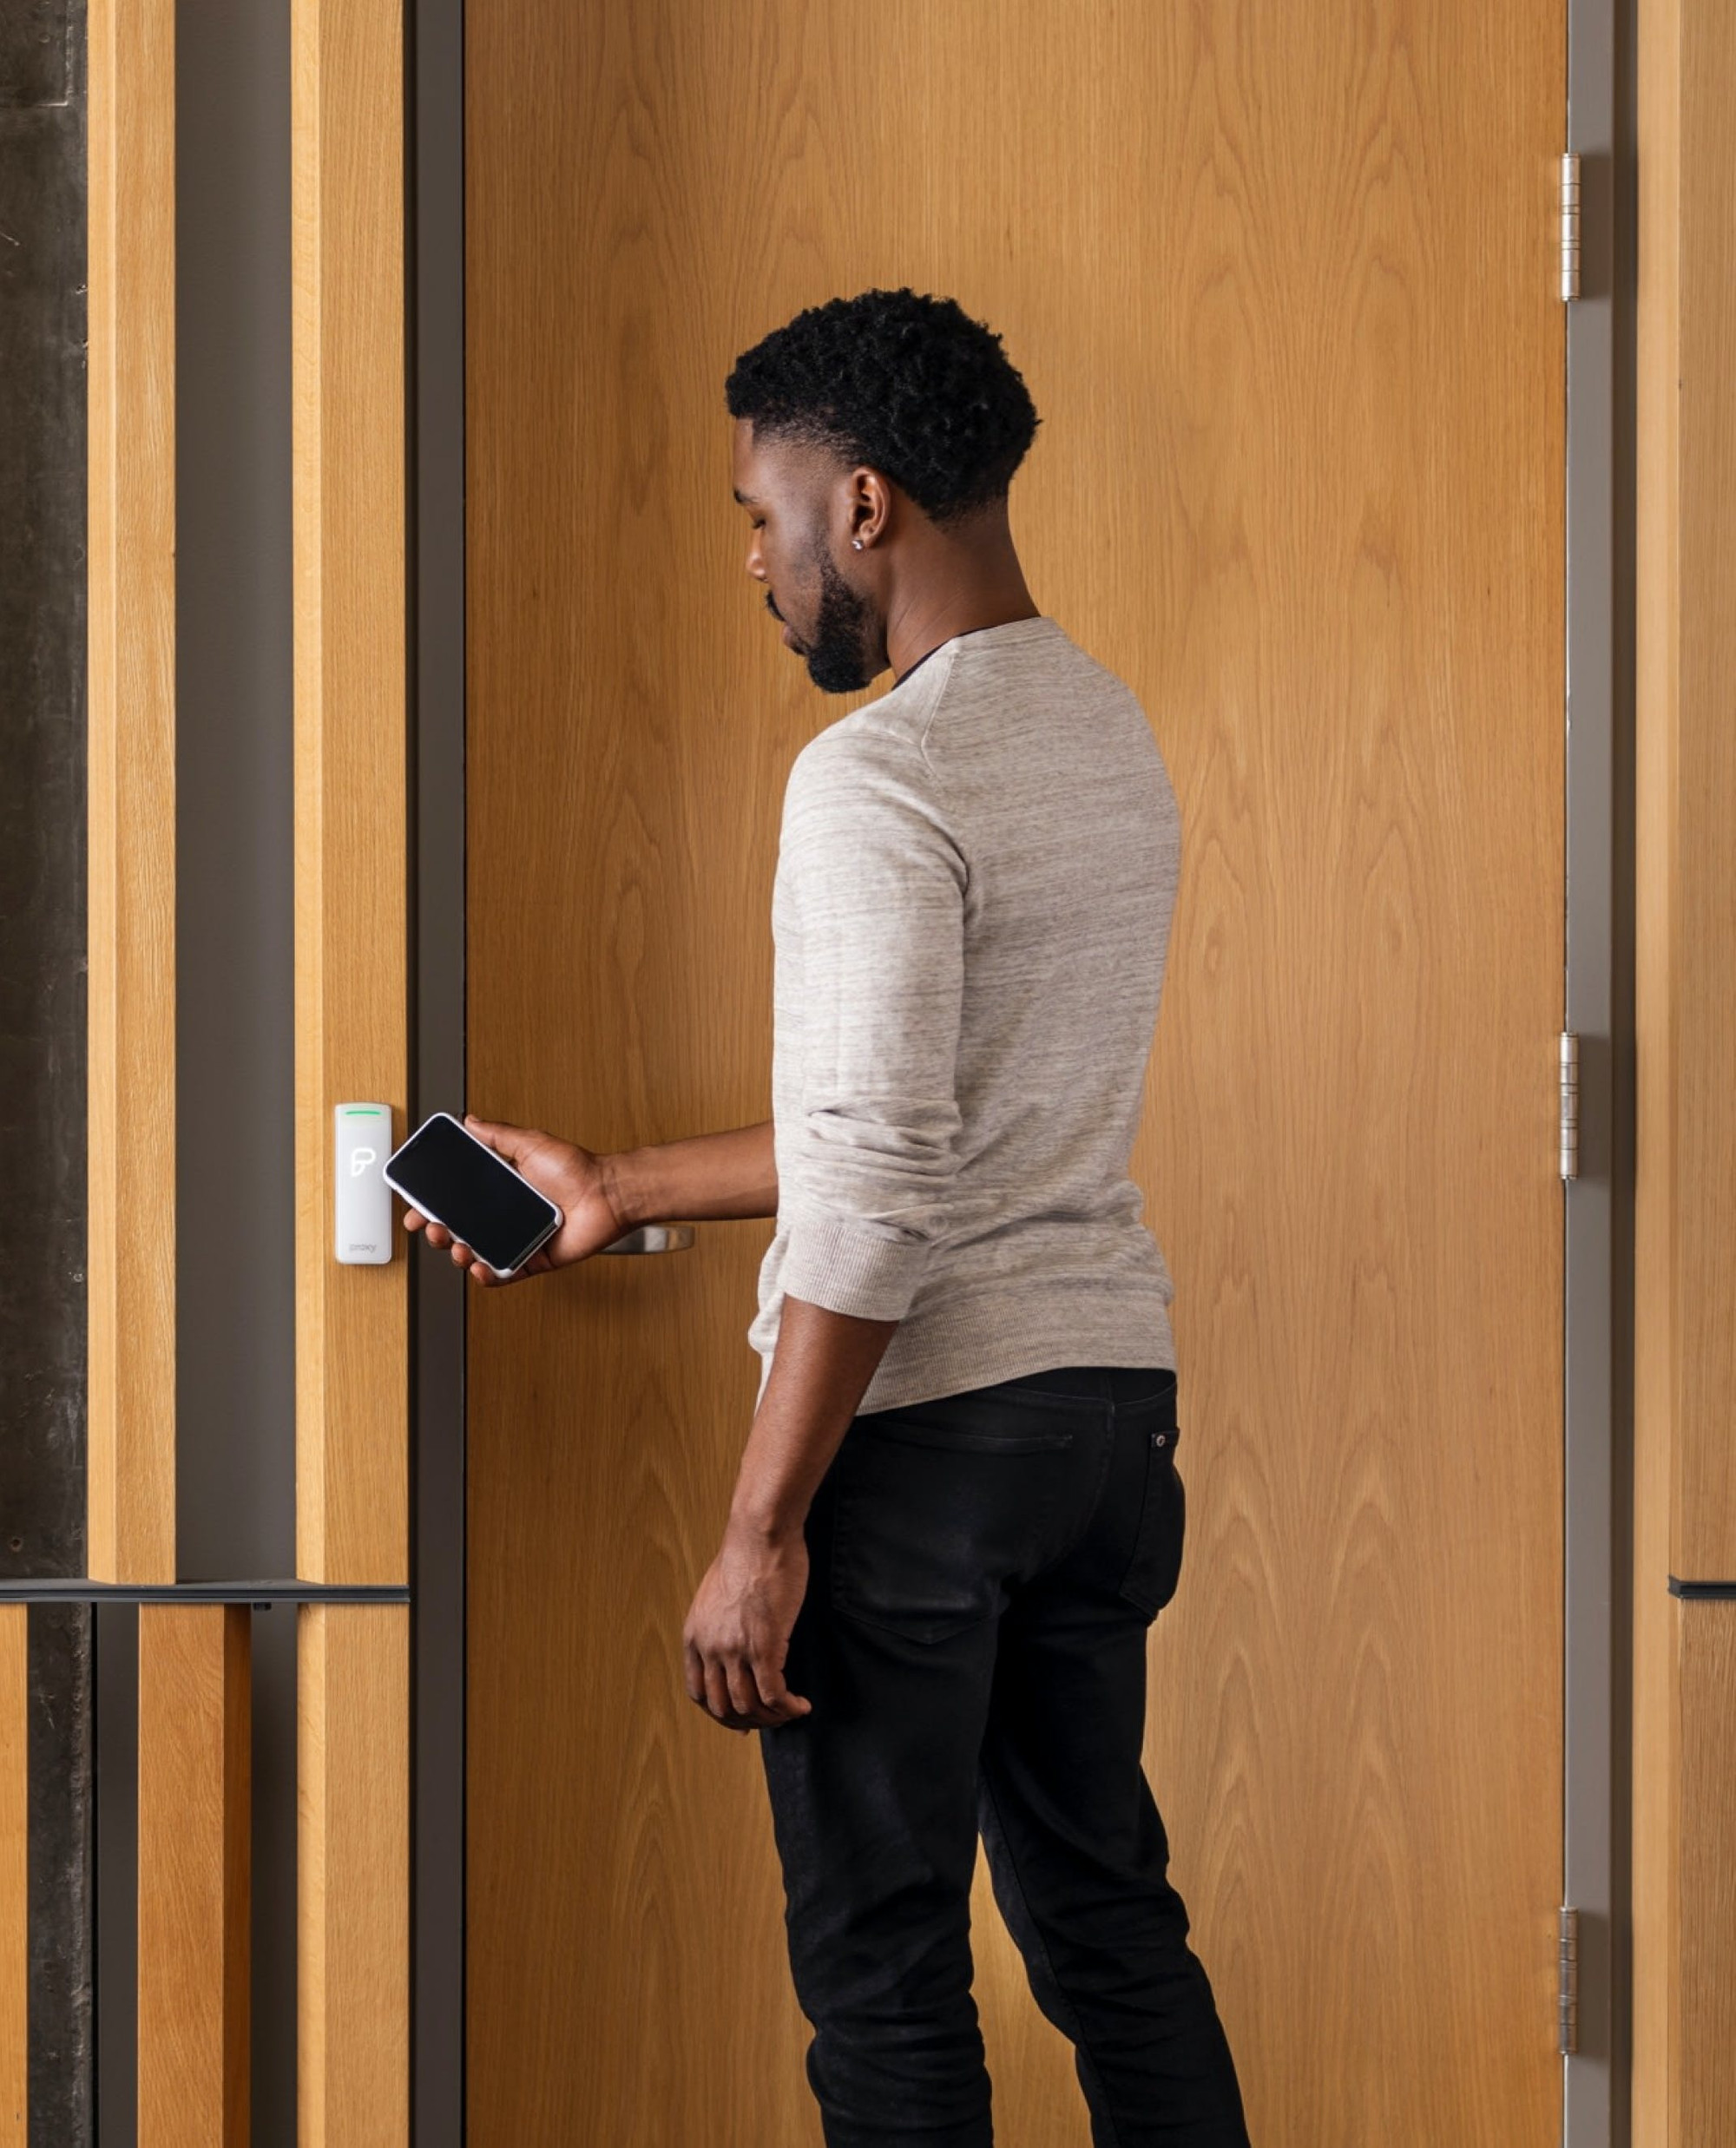 Man tapping his phone on a door reader to open it